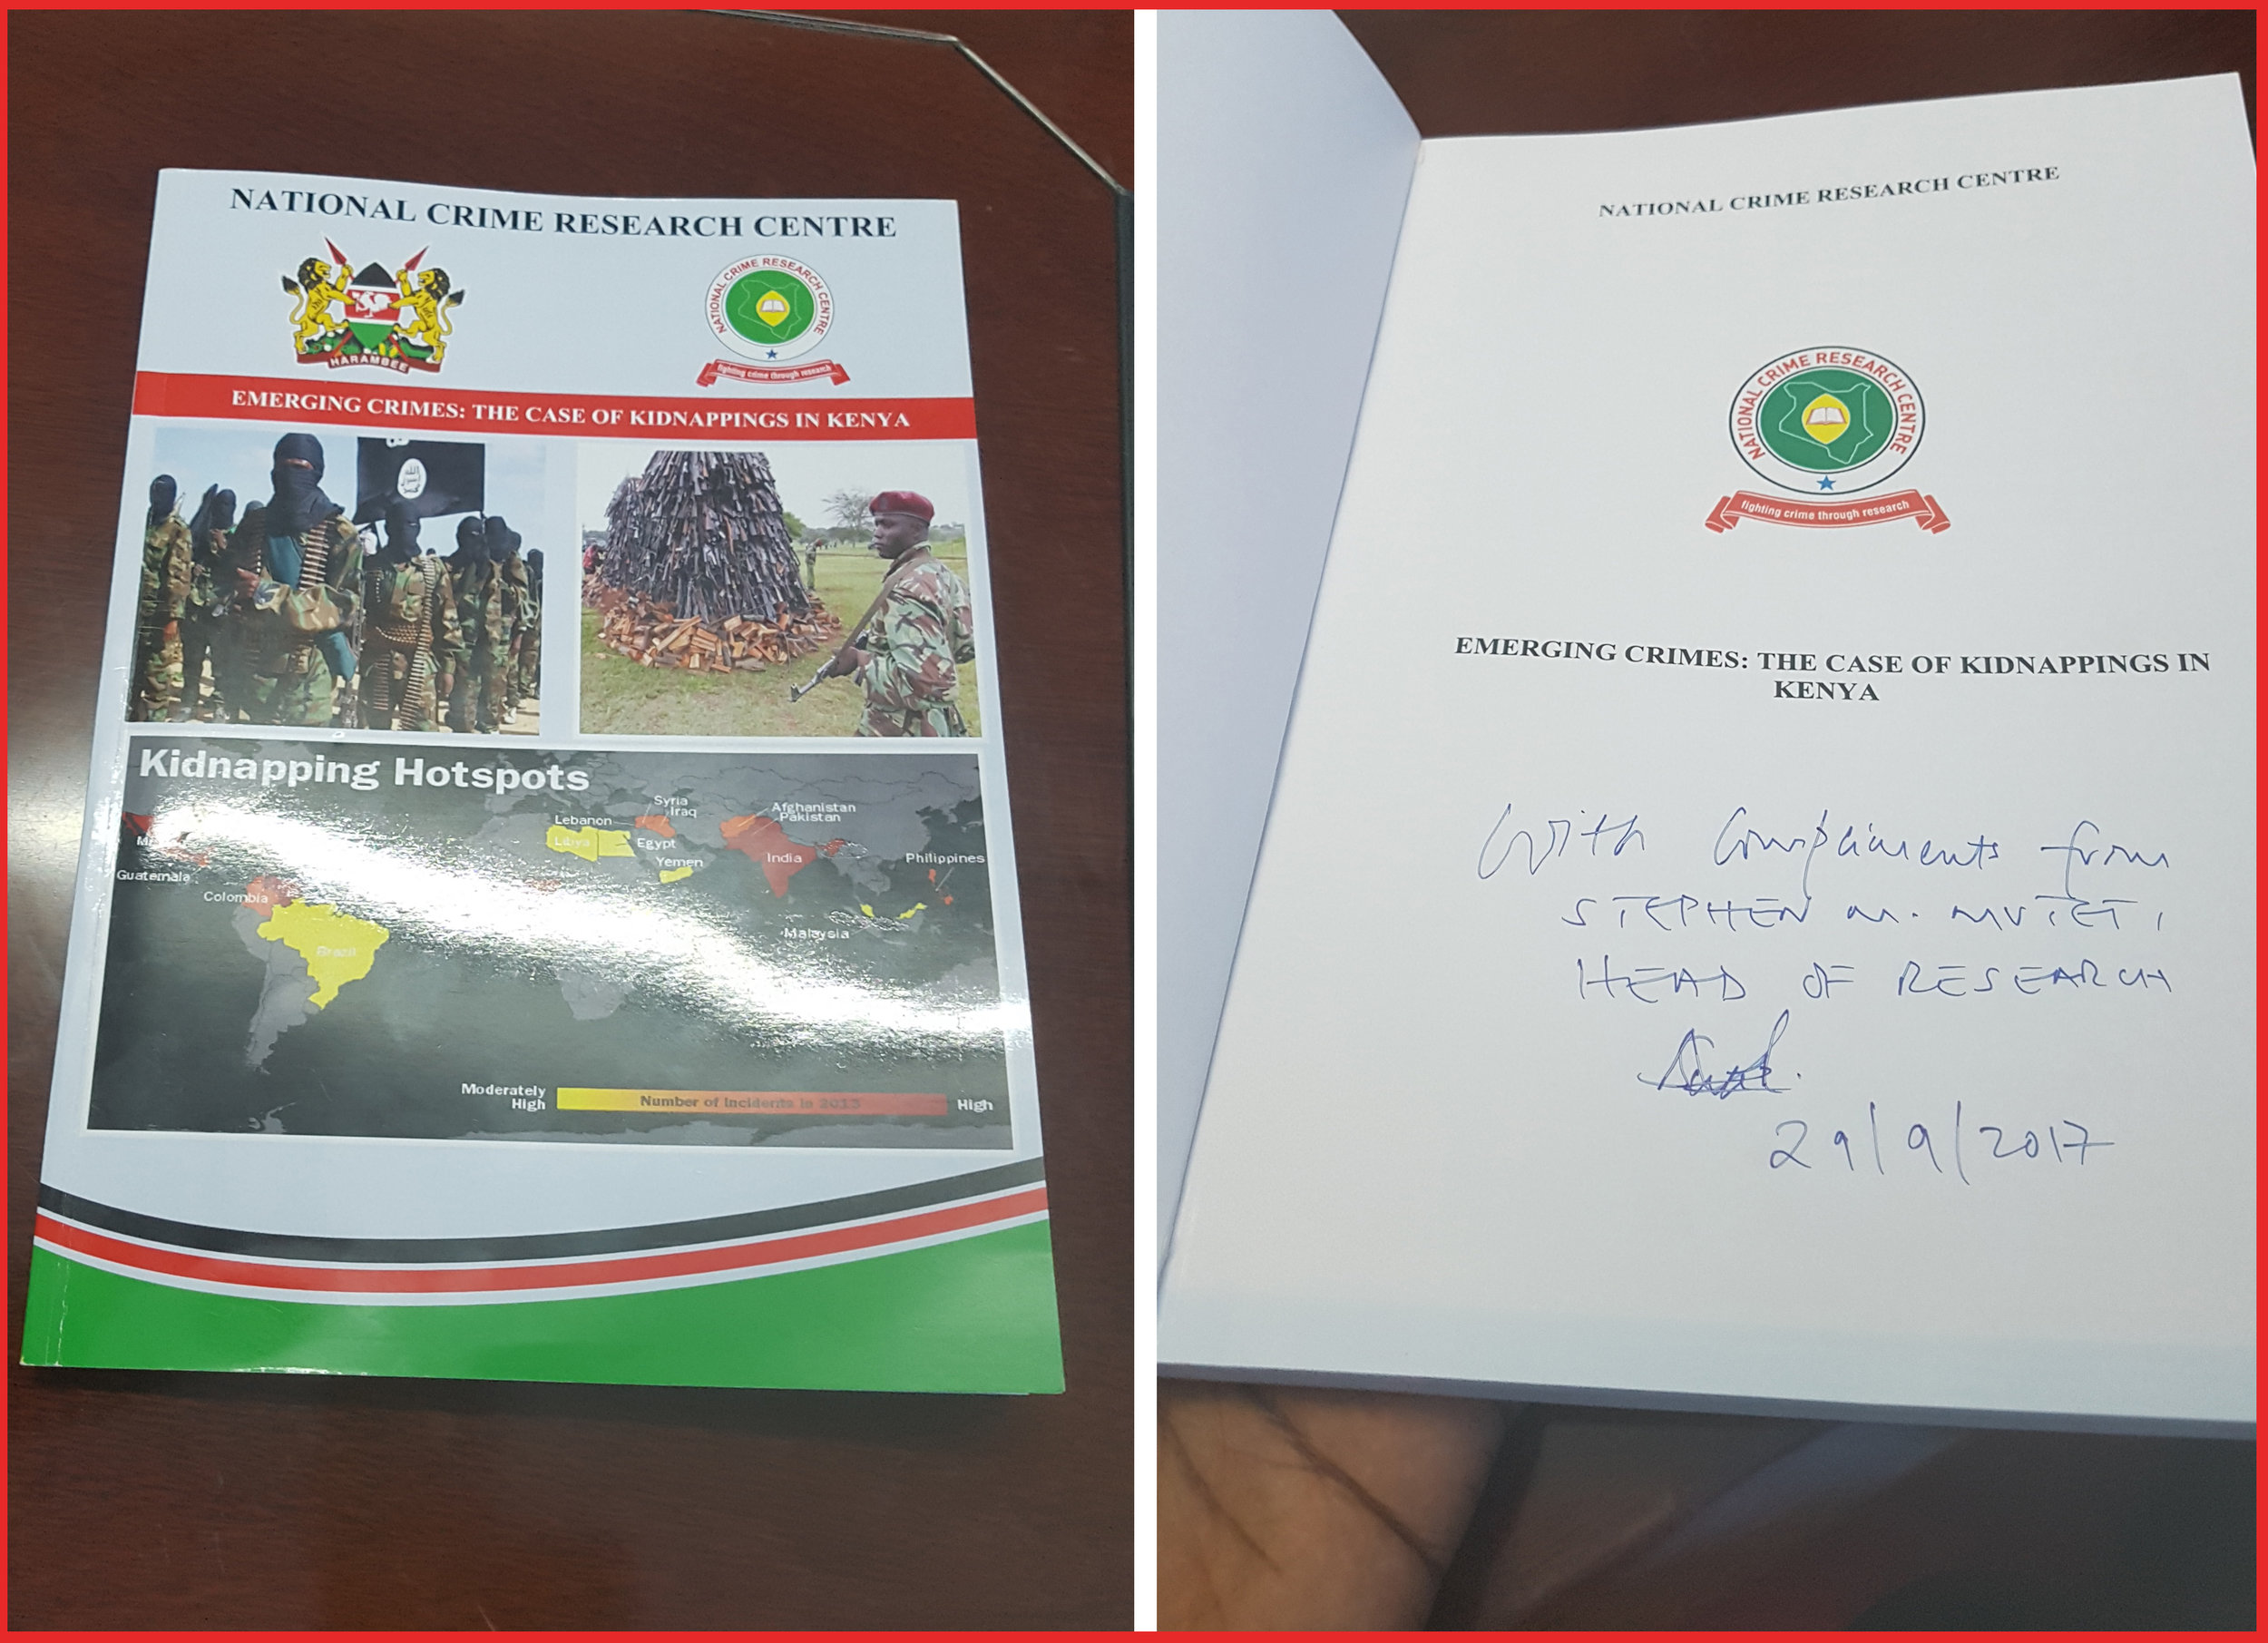 Glad to have been given a limited hardcopy version of the report, signed by Stephen Muteti, Head of Research at NCRC.